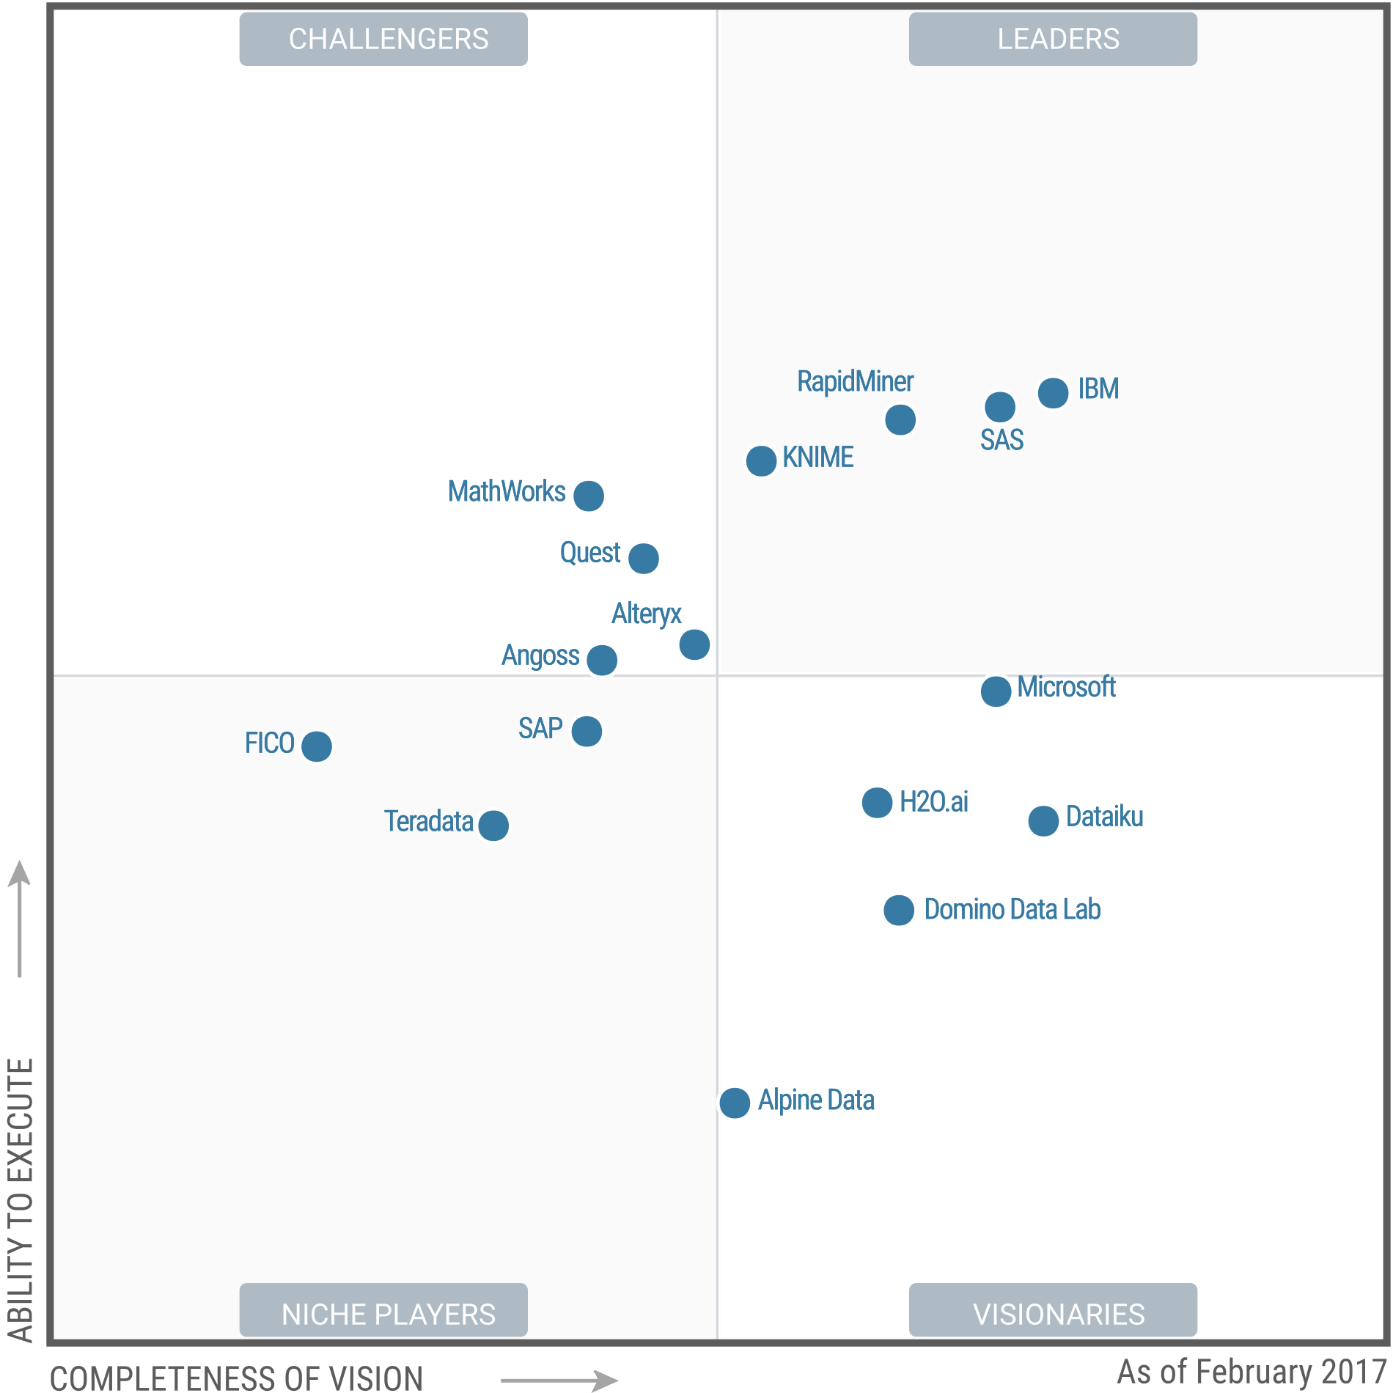 2017_GARTNER_quadrant.png